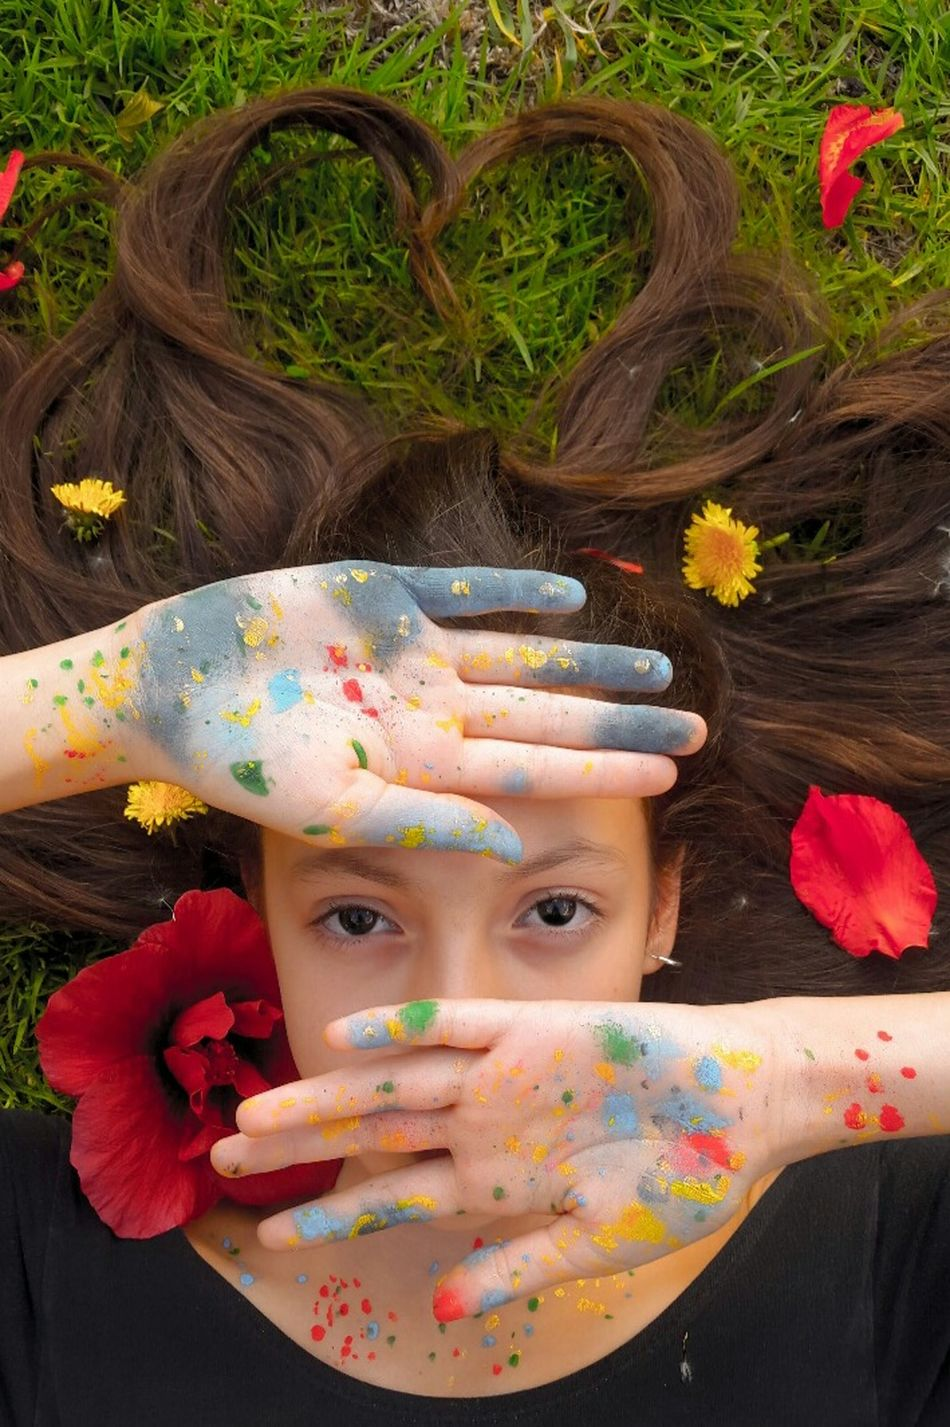 Human Body Part High Angle View Tumblrgirl Only Women Multi Colored Beauty Flower People Nature One Person One Woman Only Outdoors Tumblr Human Hand One Young Woman Only Close-up Young Adult Freshness Day Painting Nature Love Lovely Photo Photography